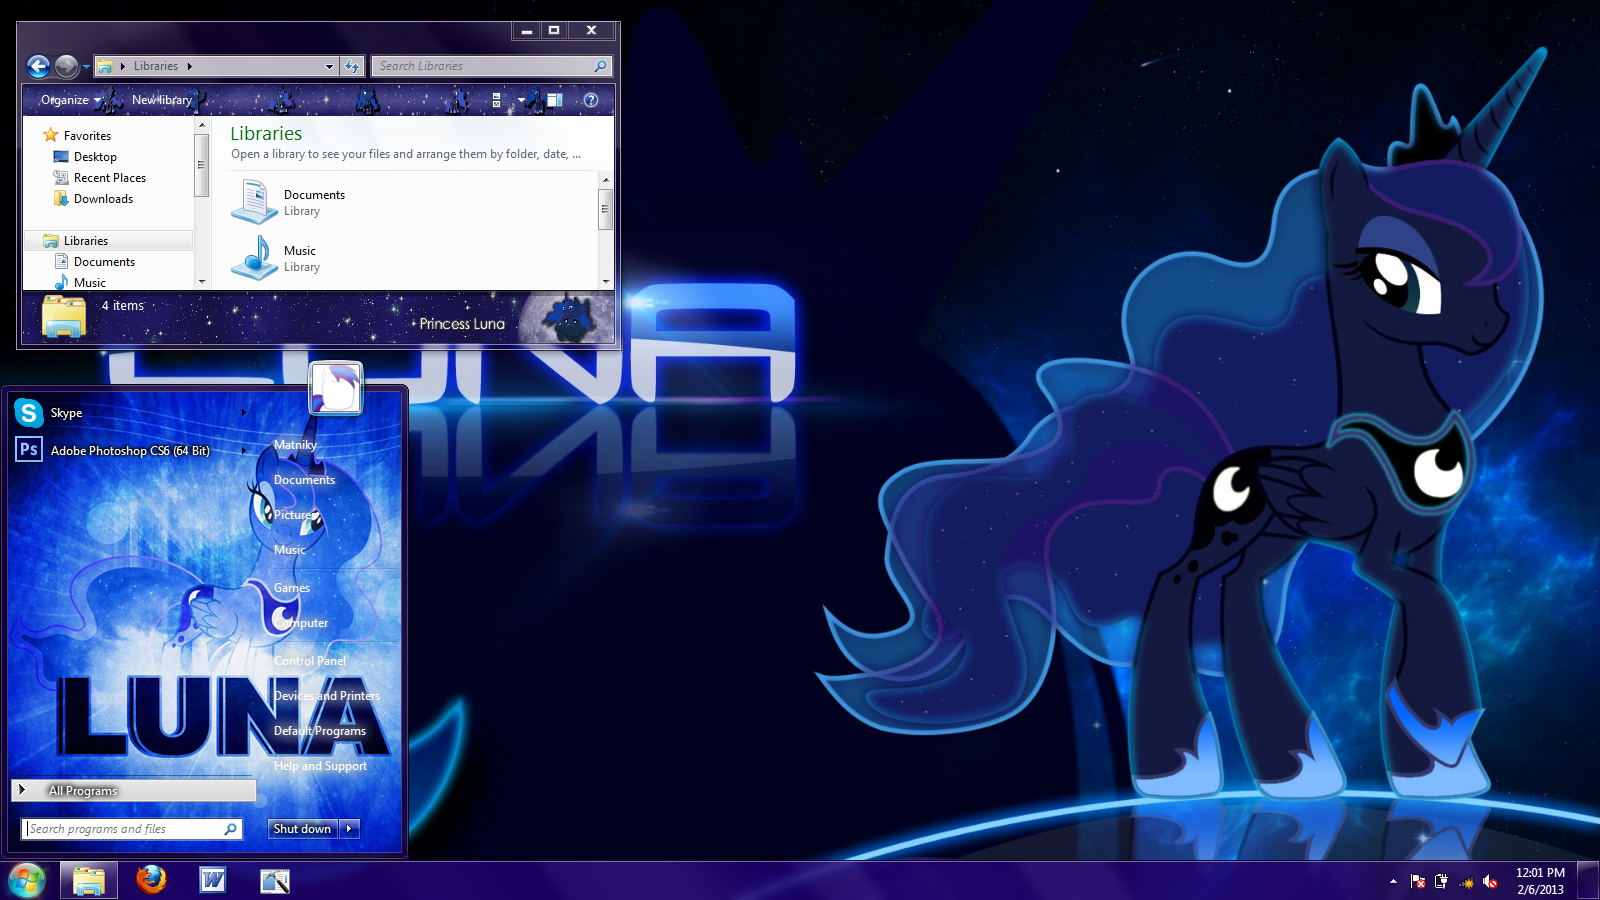 Princess Luna Windows 7 theme by Matniky